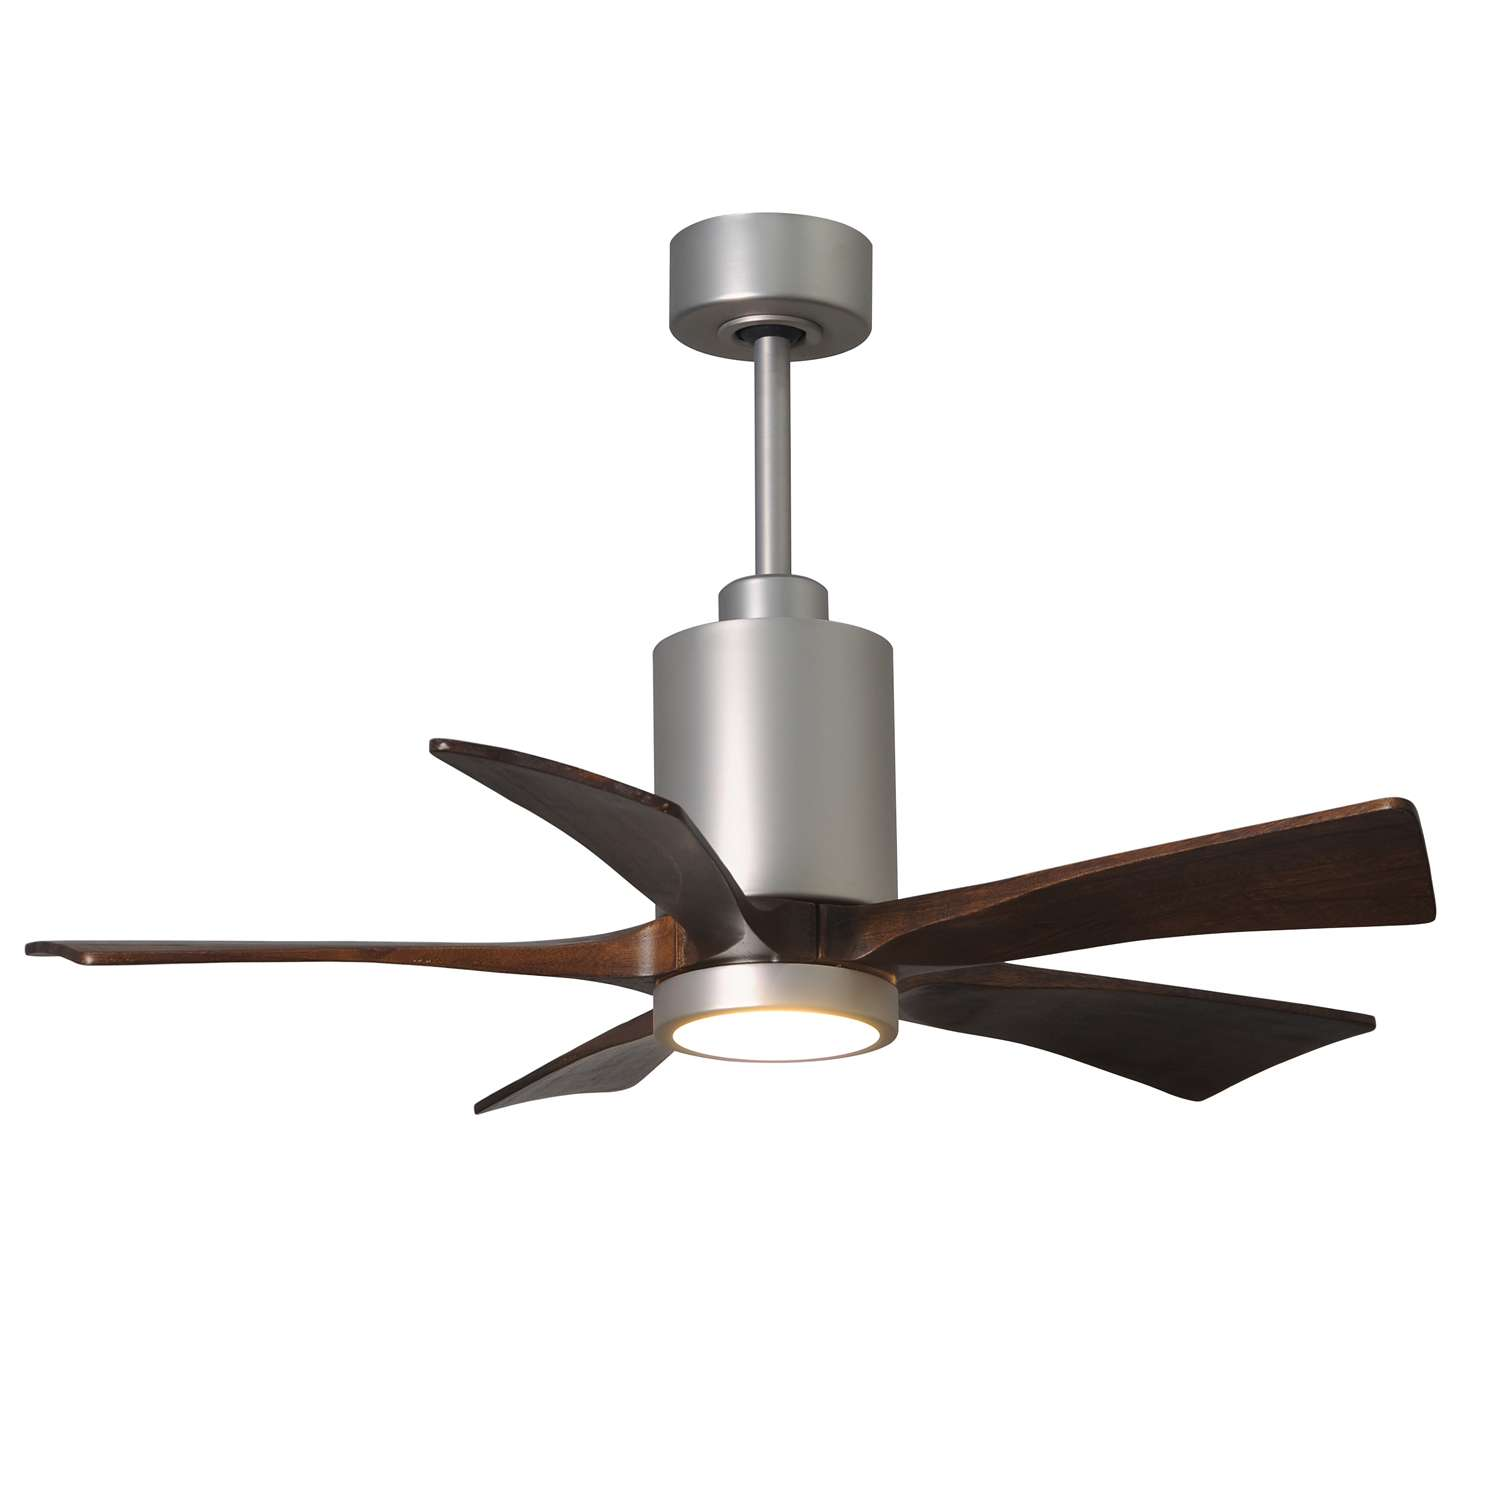 Ceiling fan clipart sounds in motion royalty free Ceiling Fans Noise – Lamps royalty free